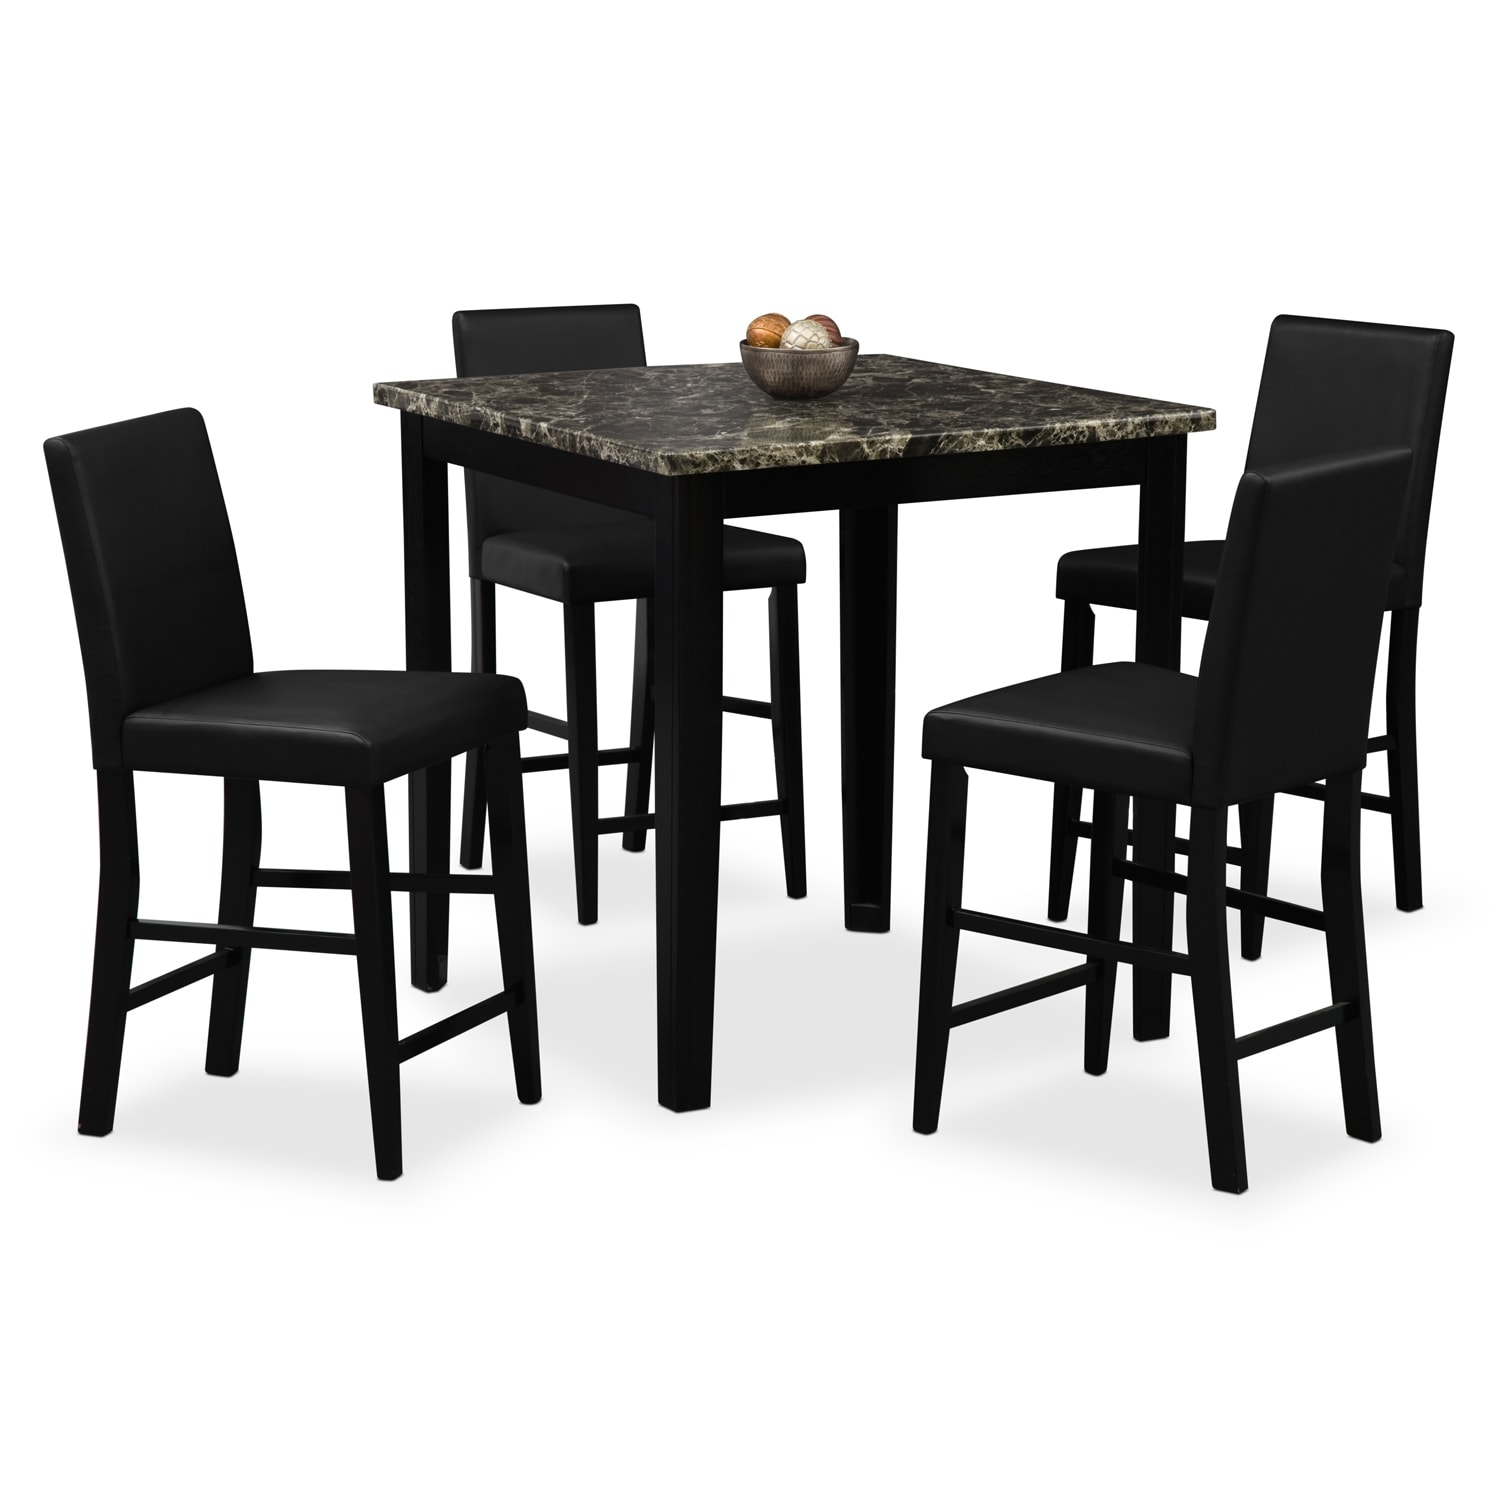 Shadow Counter-Height Table and 4 Chairs - Black